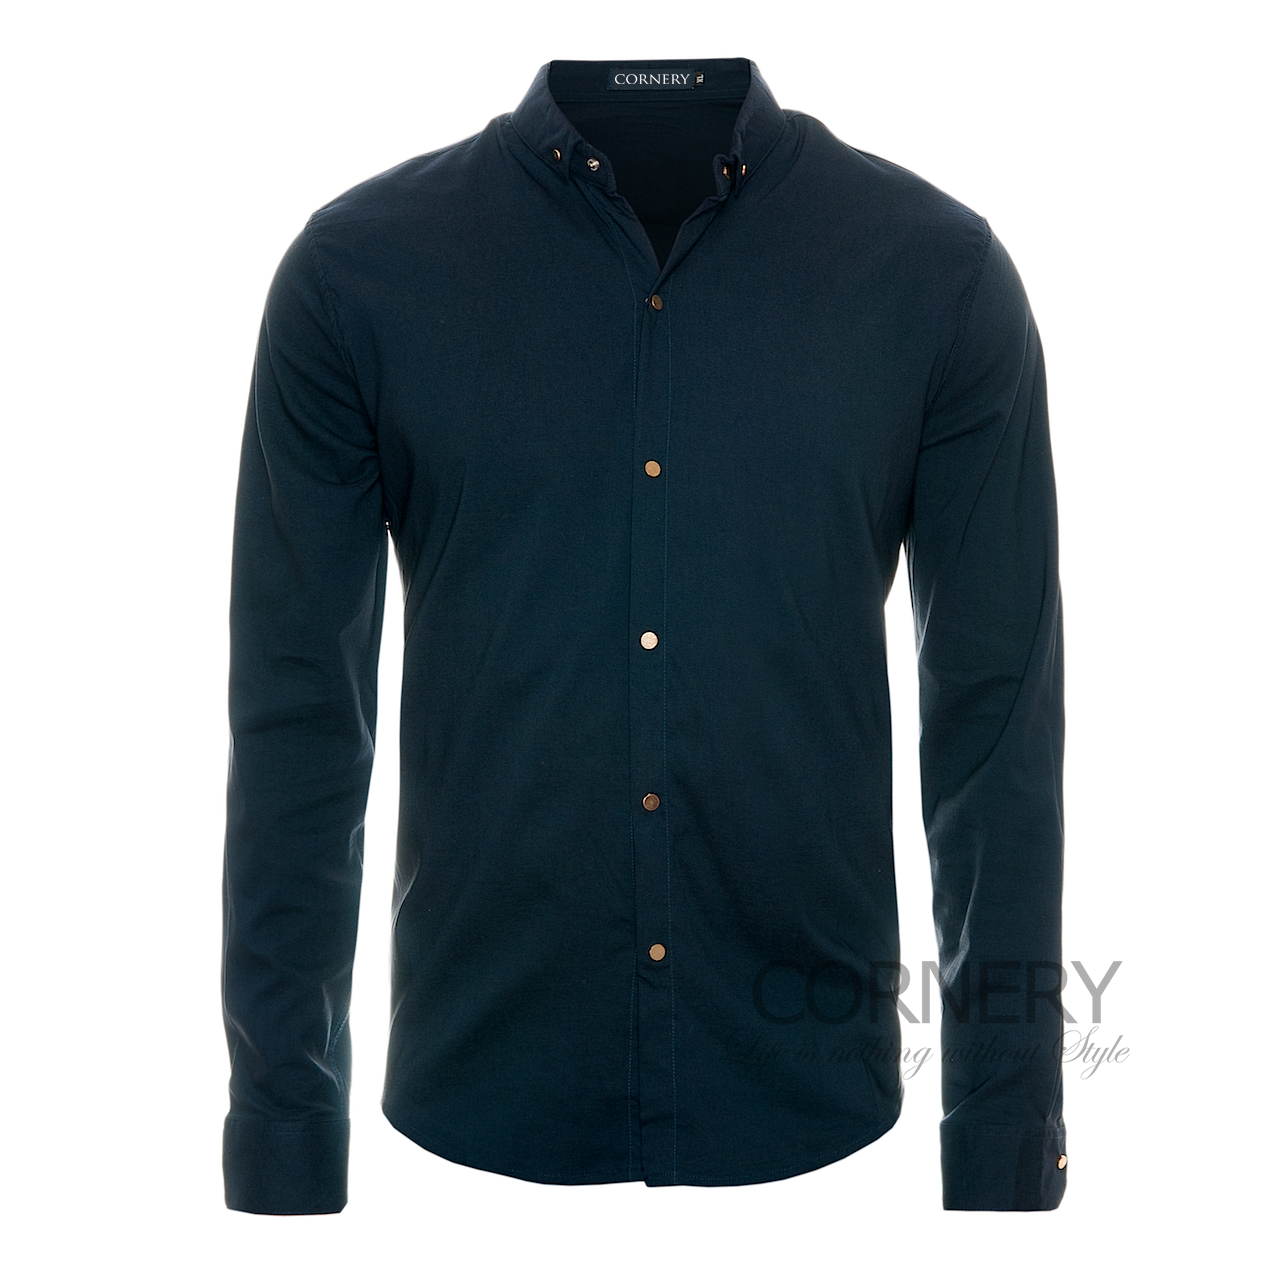 Рубашки Cornery Shirt Dark Blue